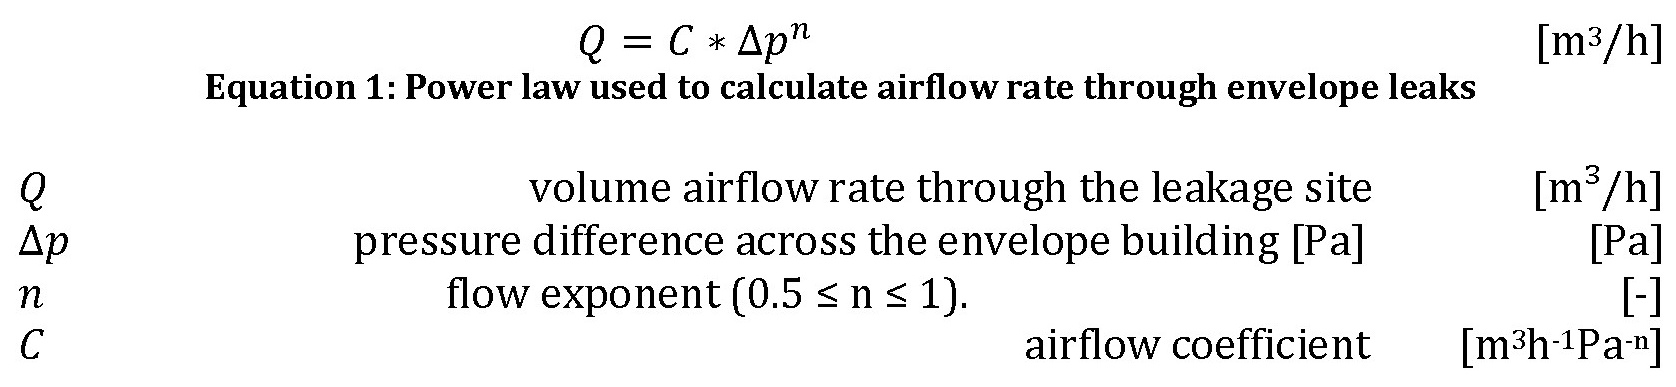 relationship between air pressure and flow rate